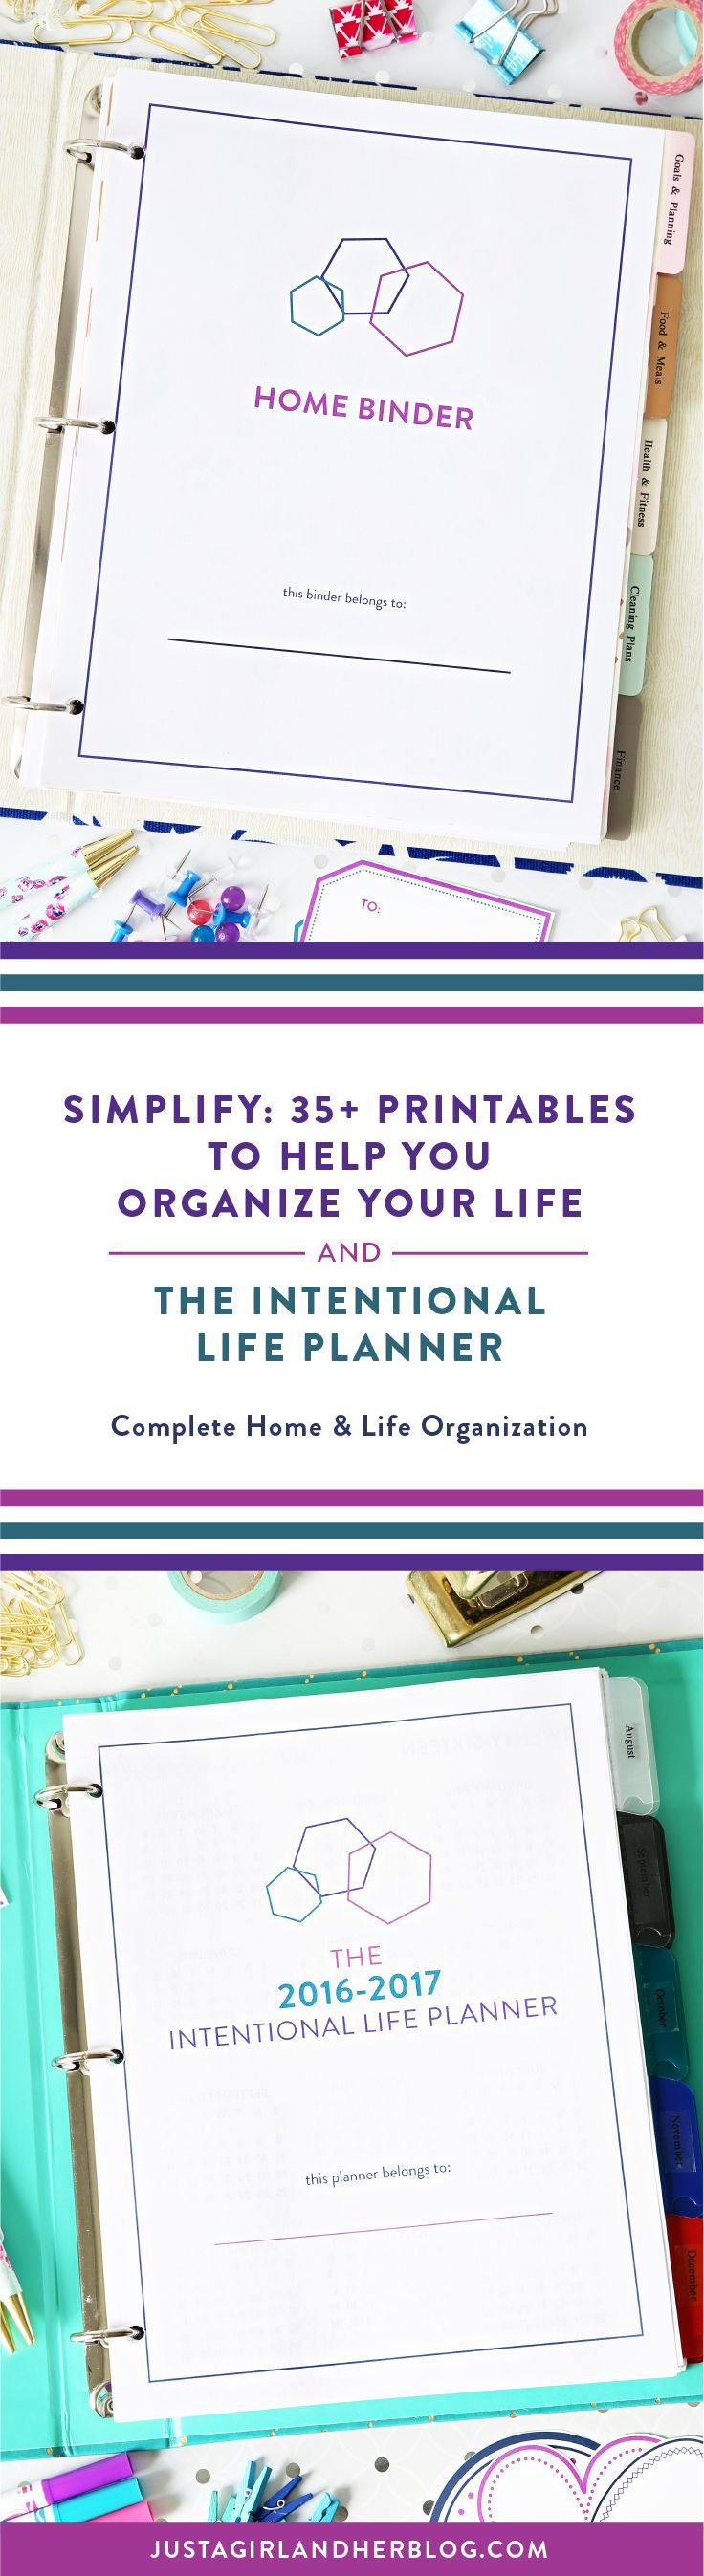 Getting organized and finding time to accomplish your biggest goals is challenging. That's why I created Simplify (my printable home binder) and The Intentional Life Planner as a complete home and life organization system. My goal was to create an easy-to-use process for maximizing my time, organizing my home, life, and business, as well as staying focused on my most important goals. It works! This is the same system I personally use to run a successful business as well as manage my busy…